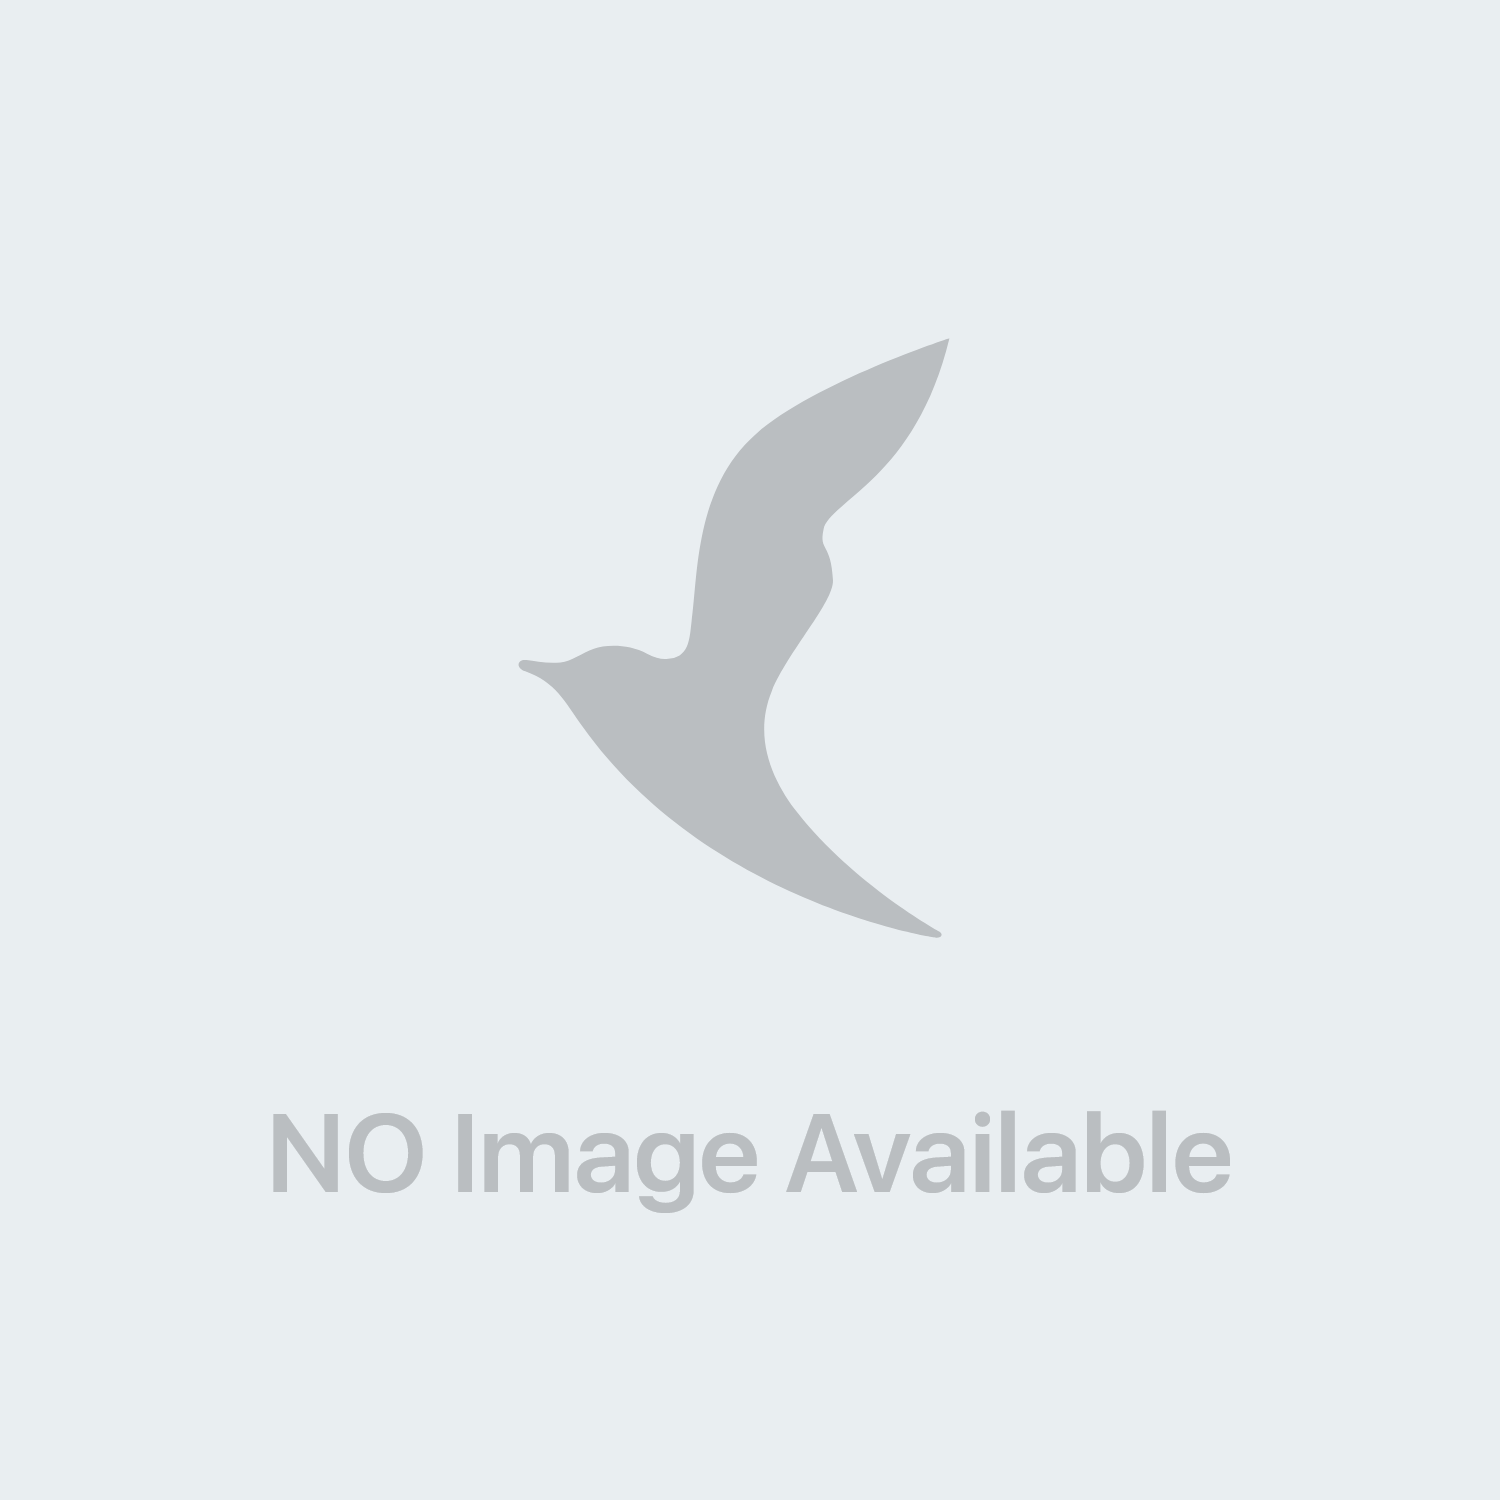 LifeMED LF-300 Stetoscopio Adulti Testina Piatta Nero